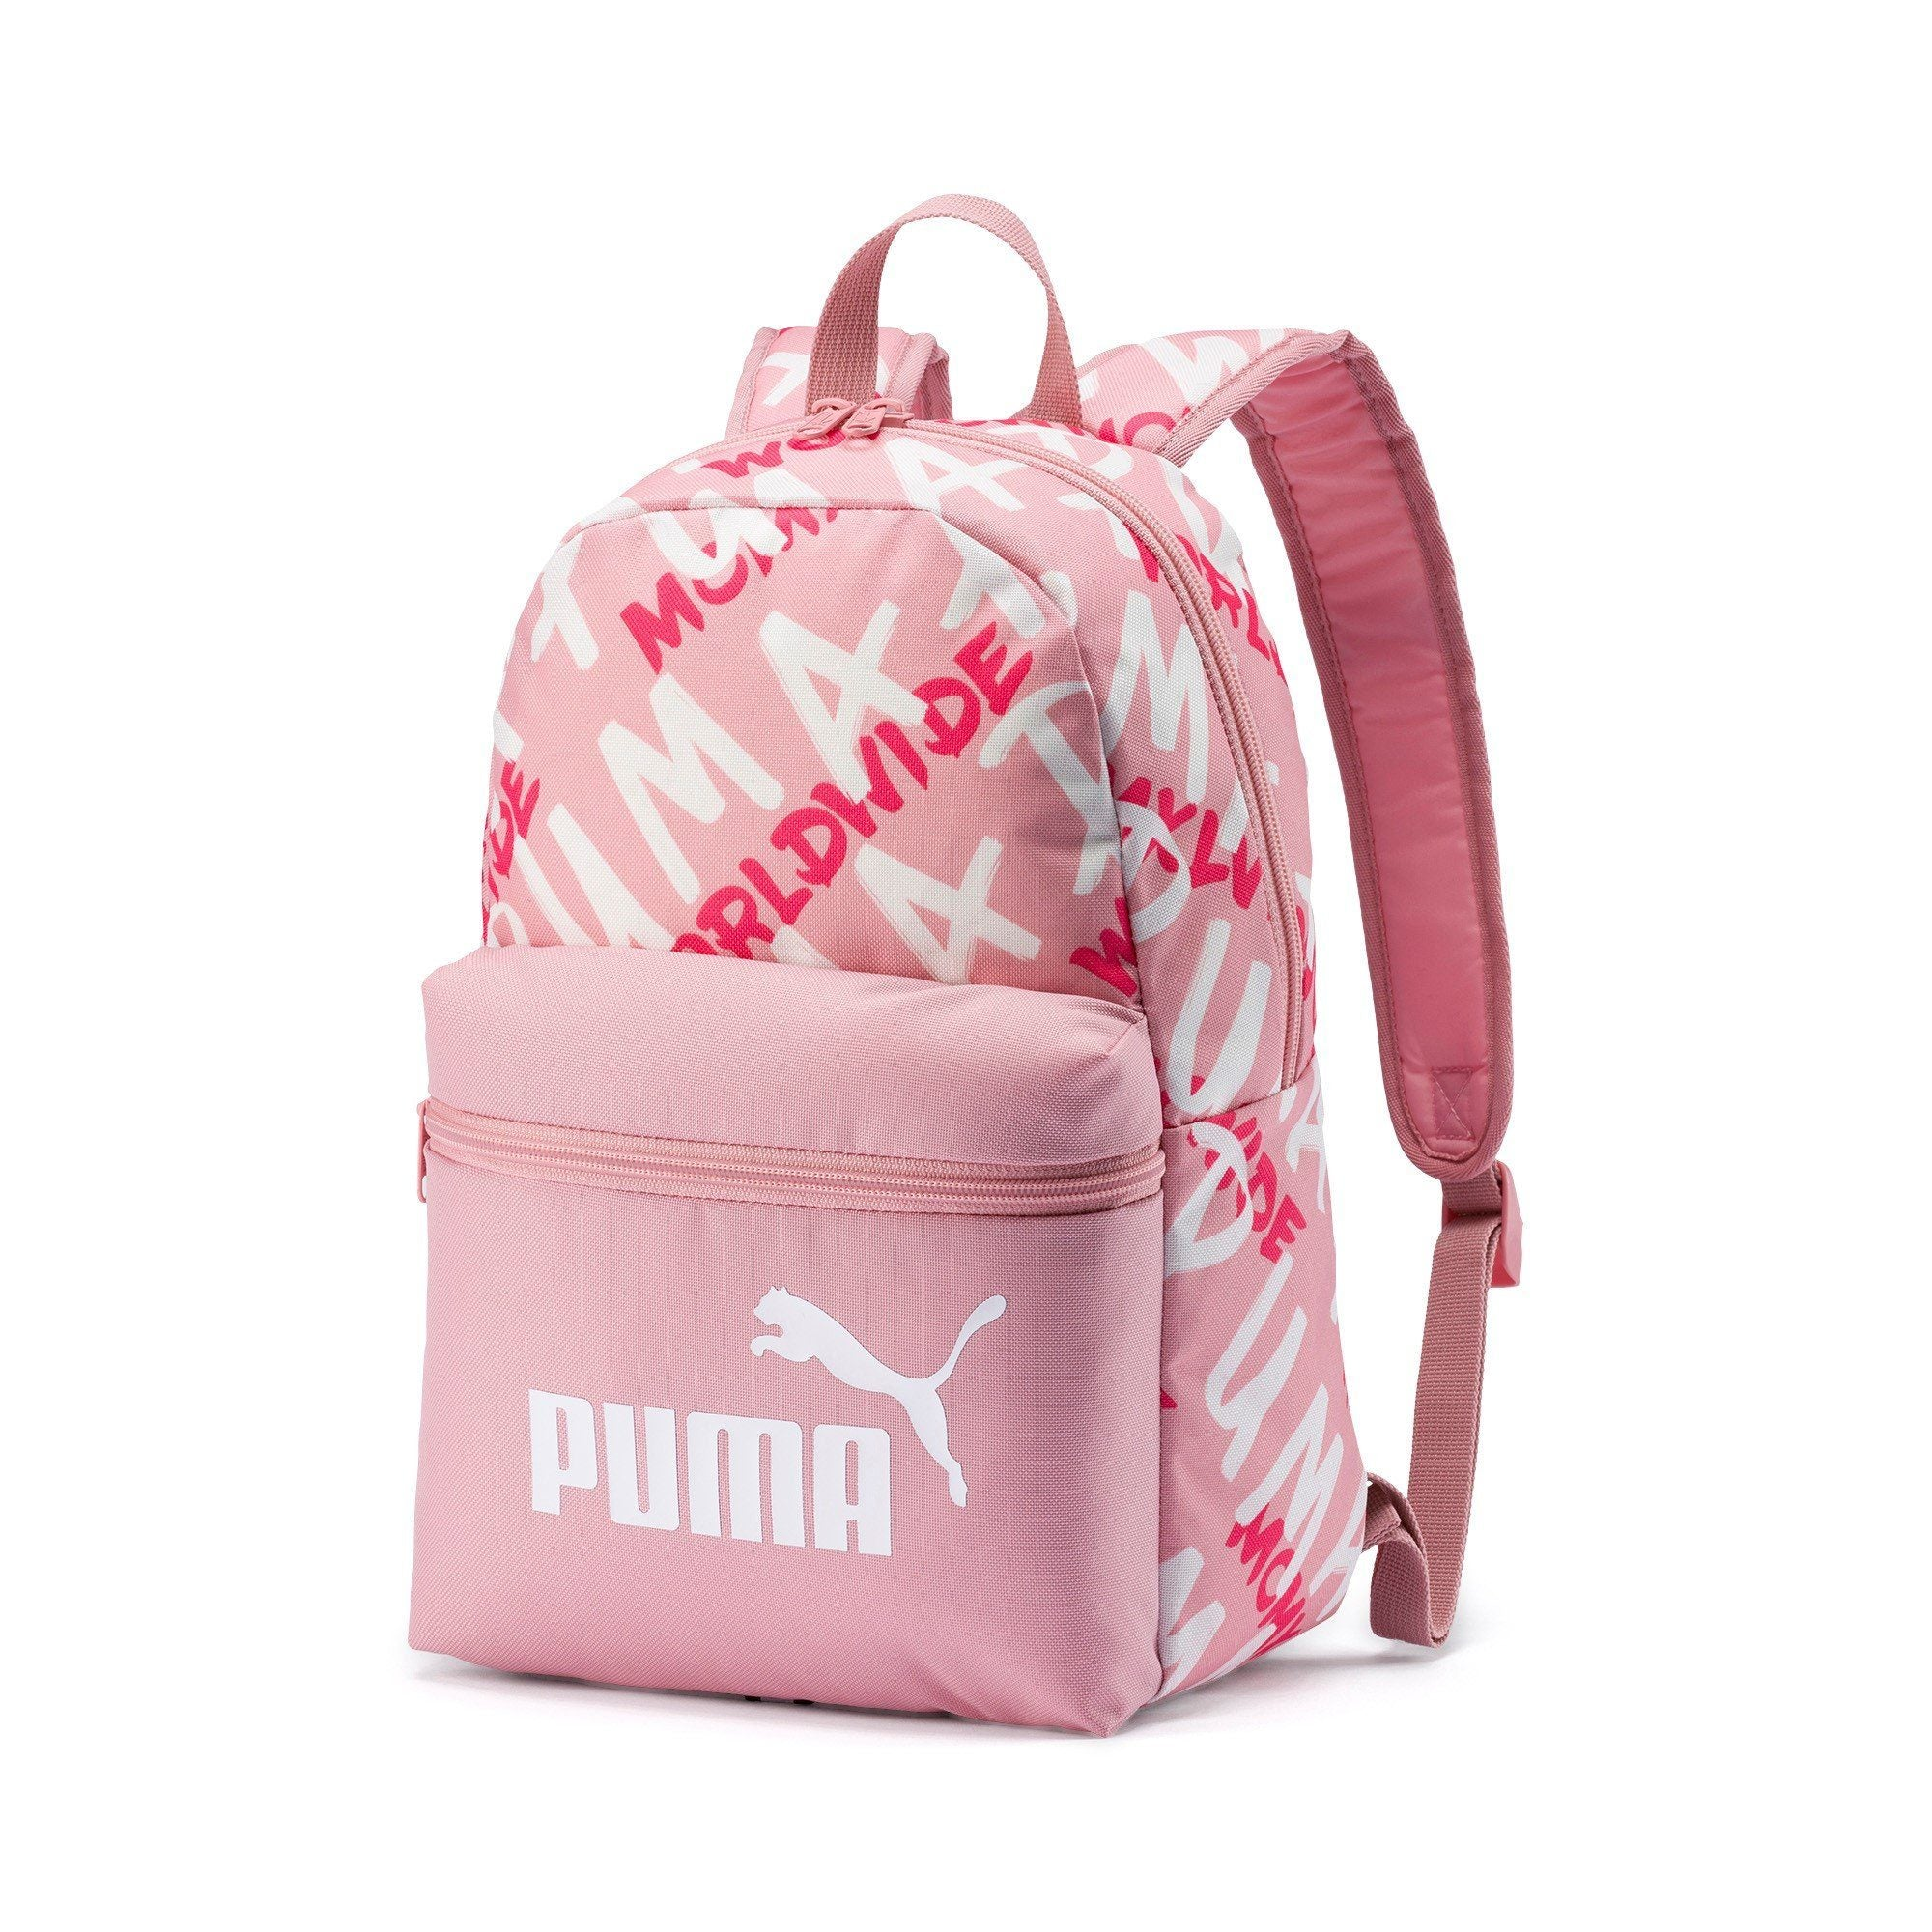 Puma Phase Small Backpack - Bridal Rose SP-Accessories-Bags Puma